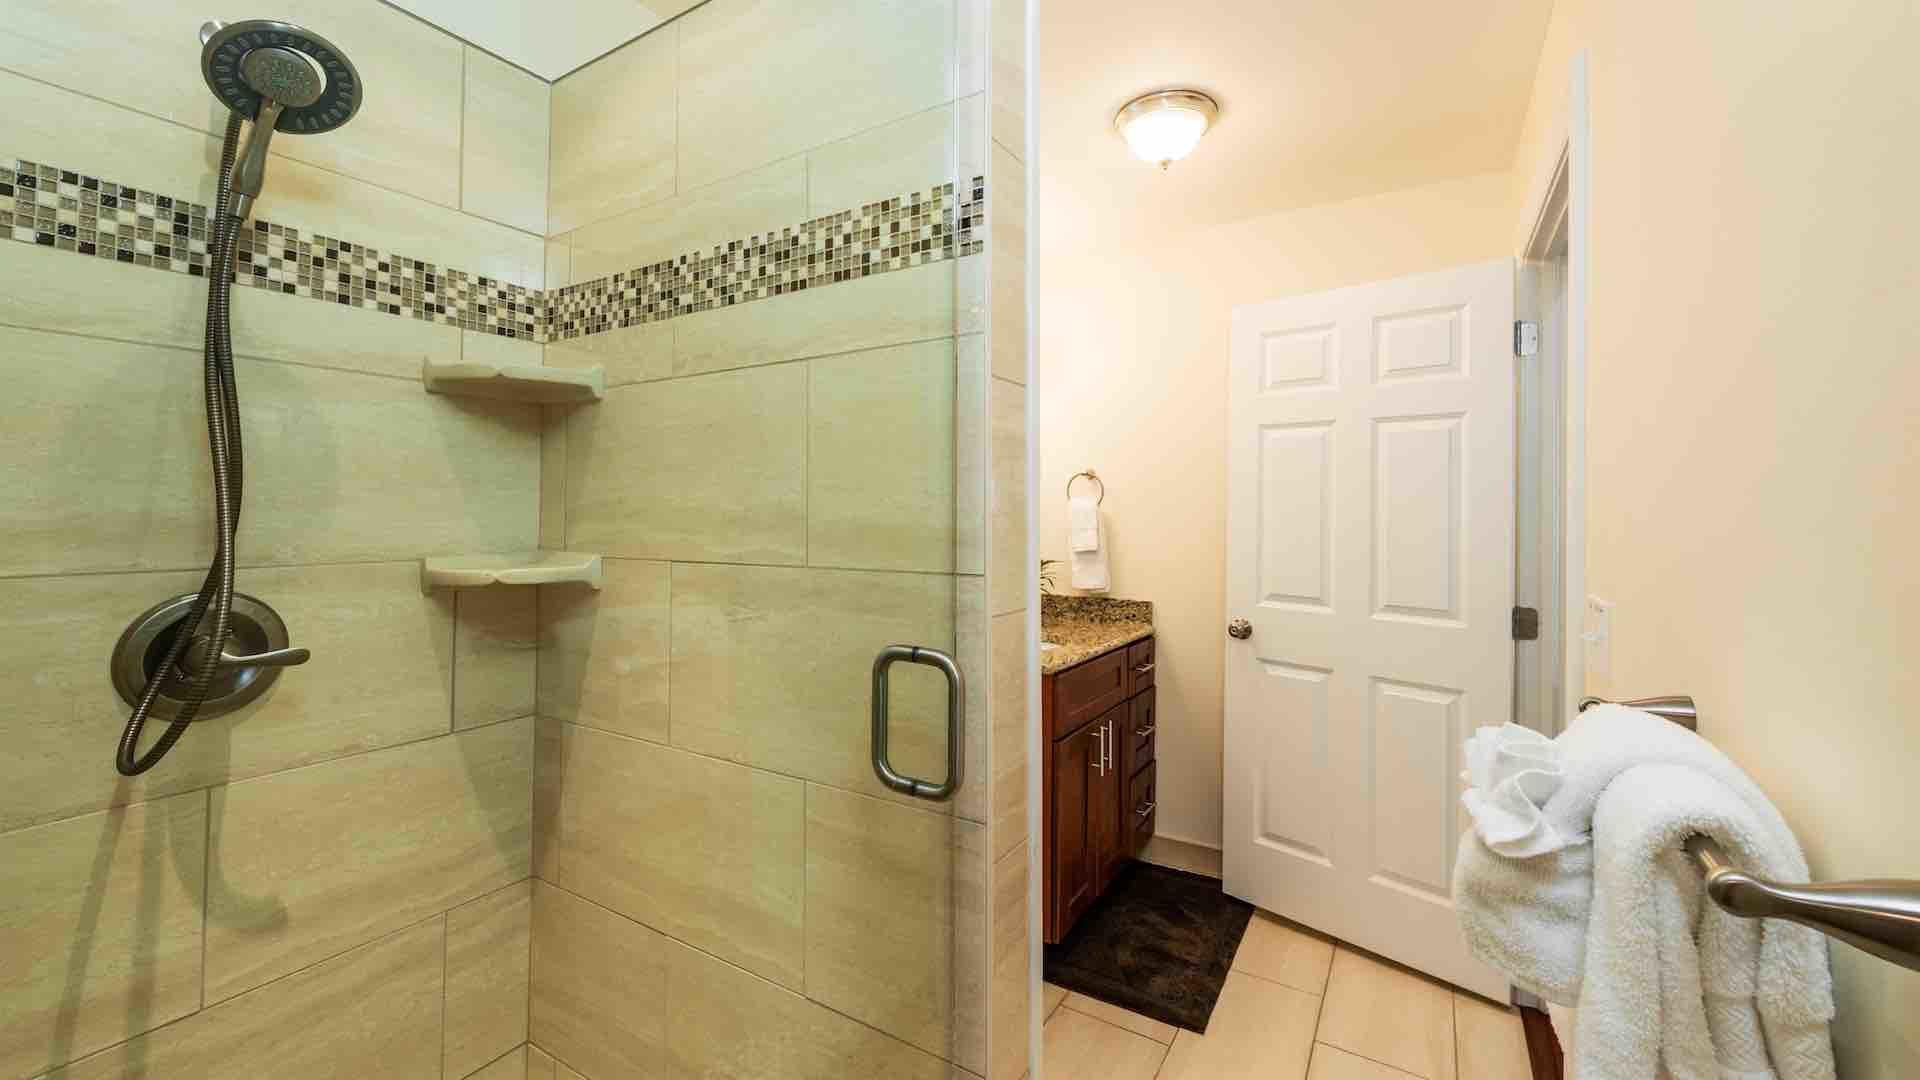 The second downstairs bathroom has a walk-in shower...